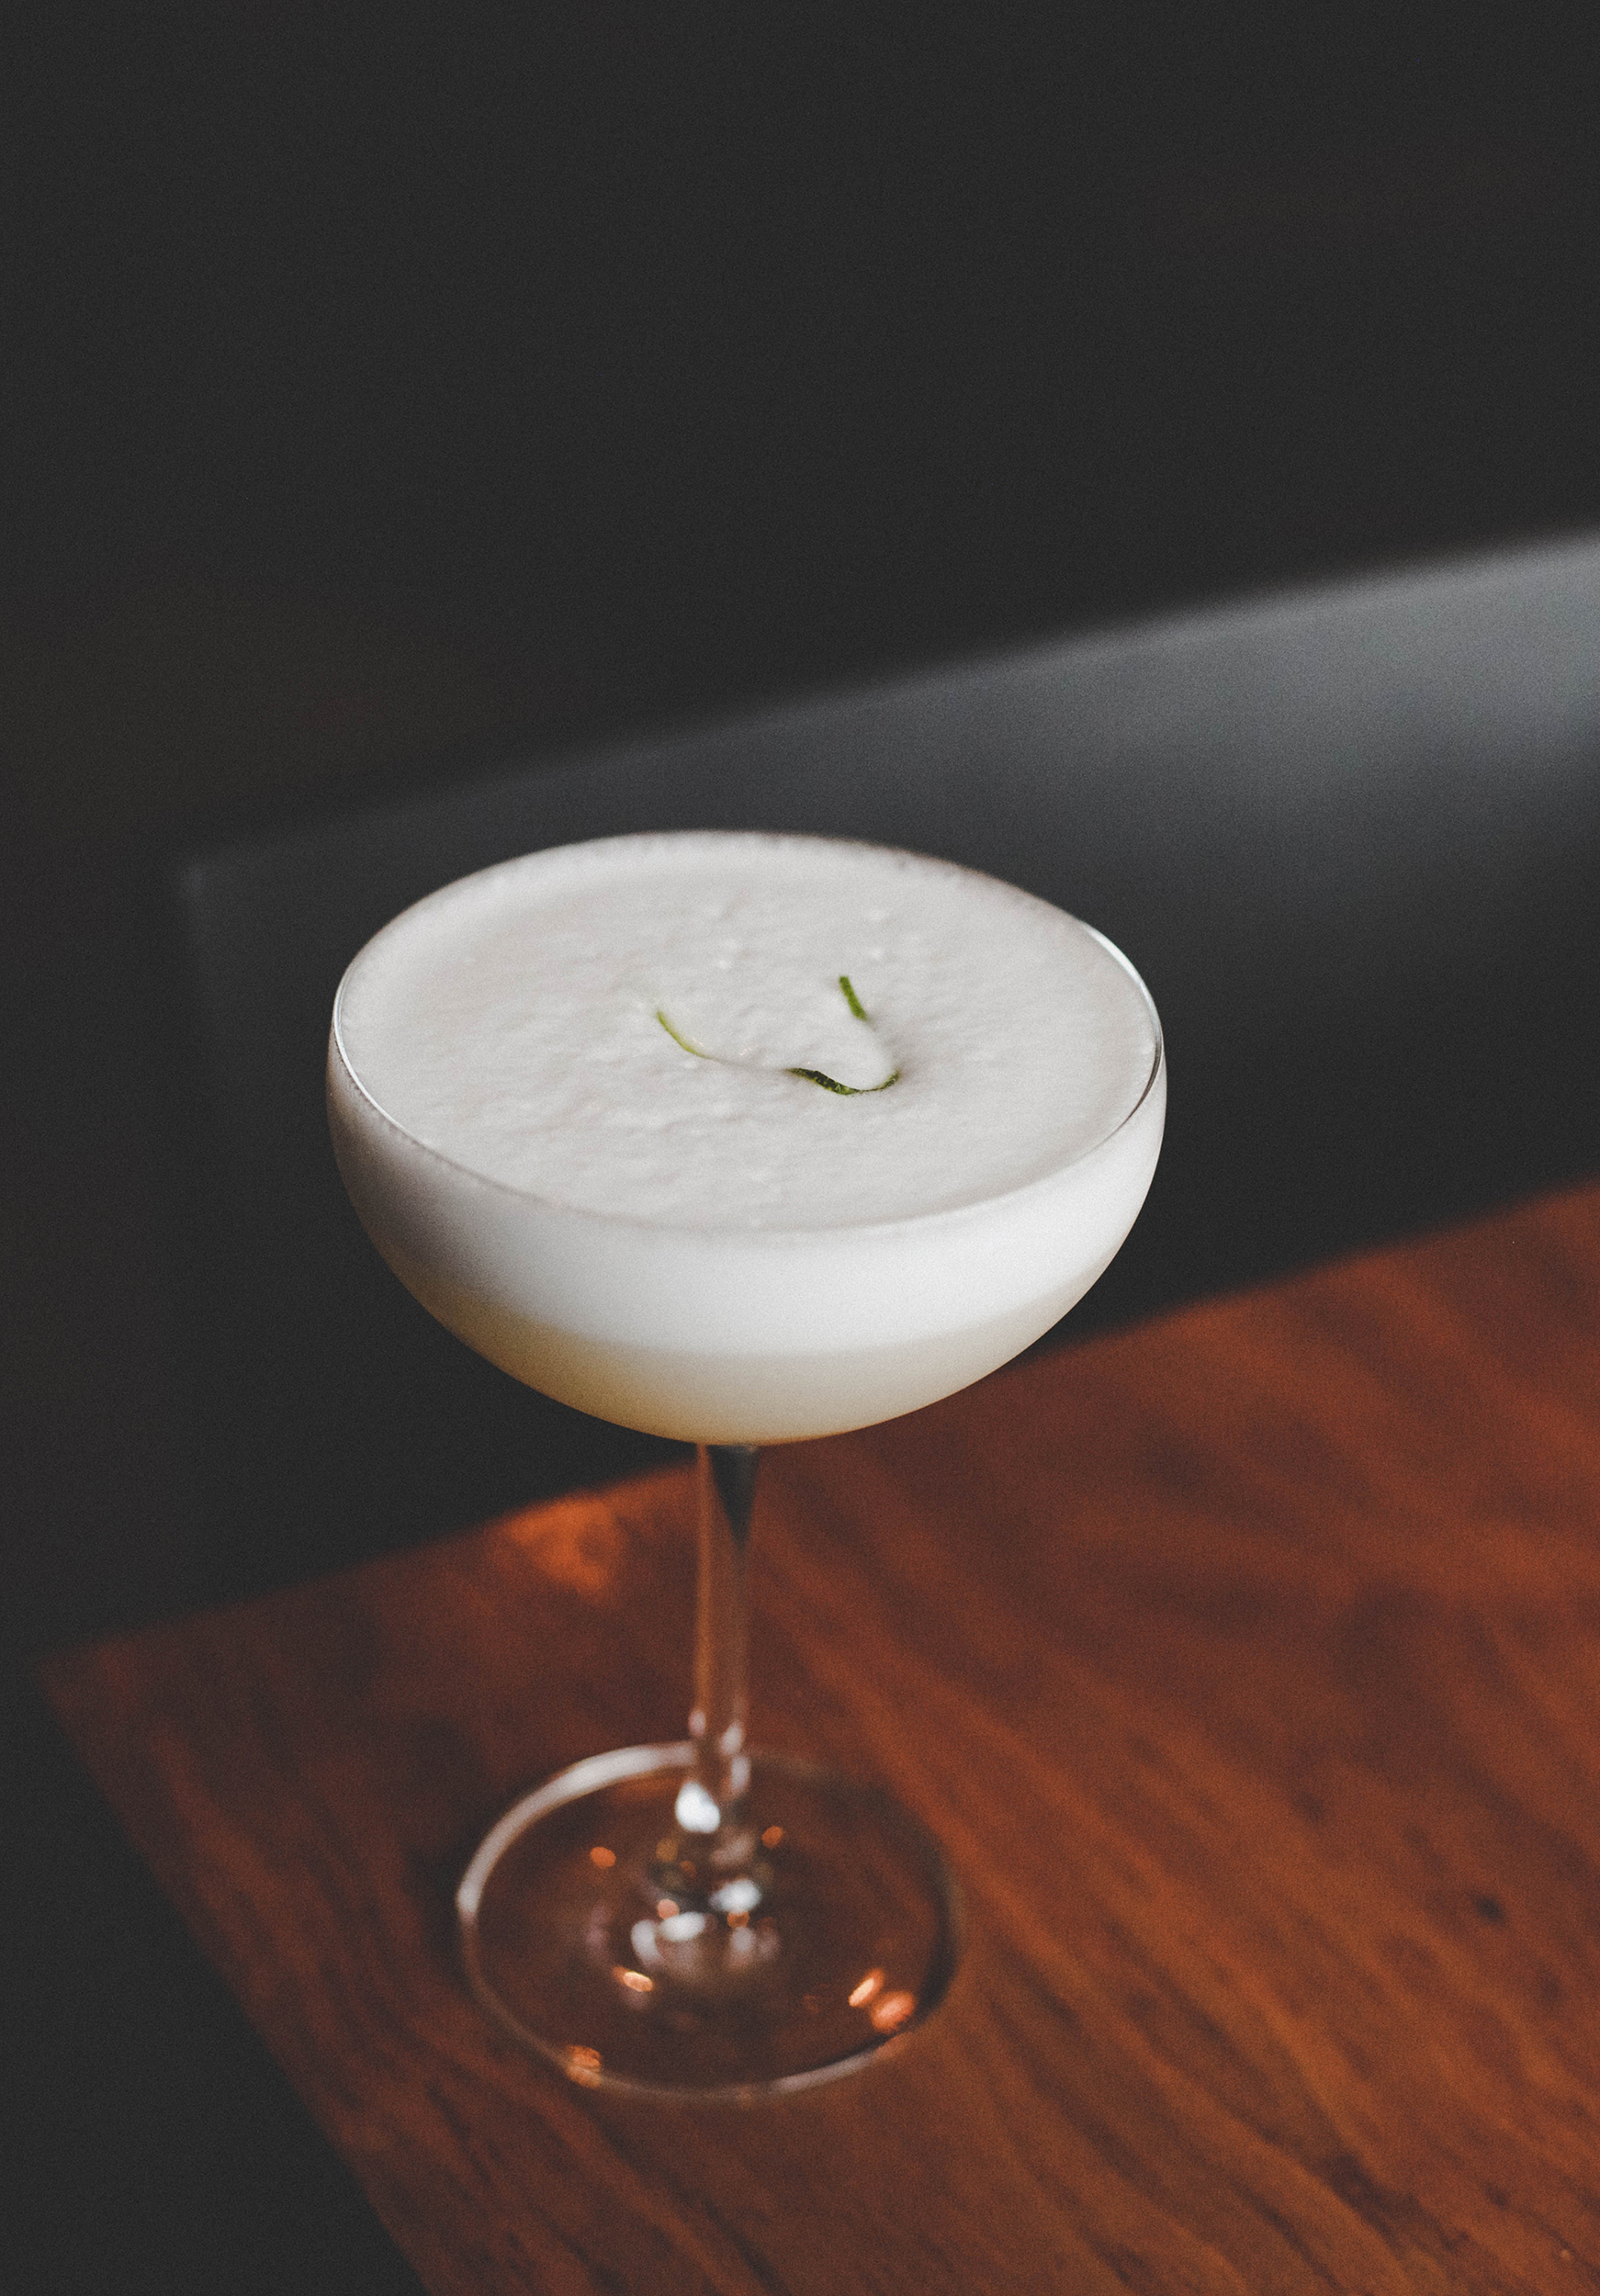 La Bella Christina: coconut milk, house-made almond syrup (orgeat), and kefir lime infused rum.